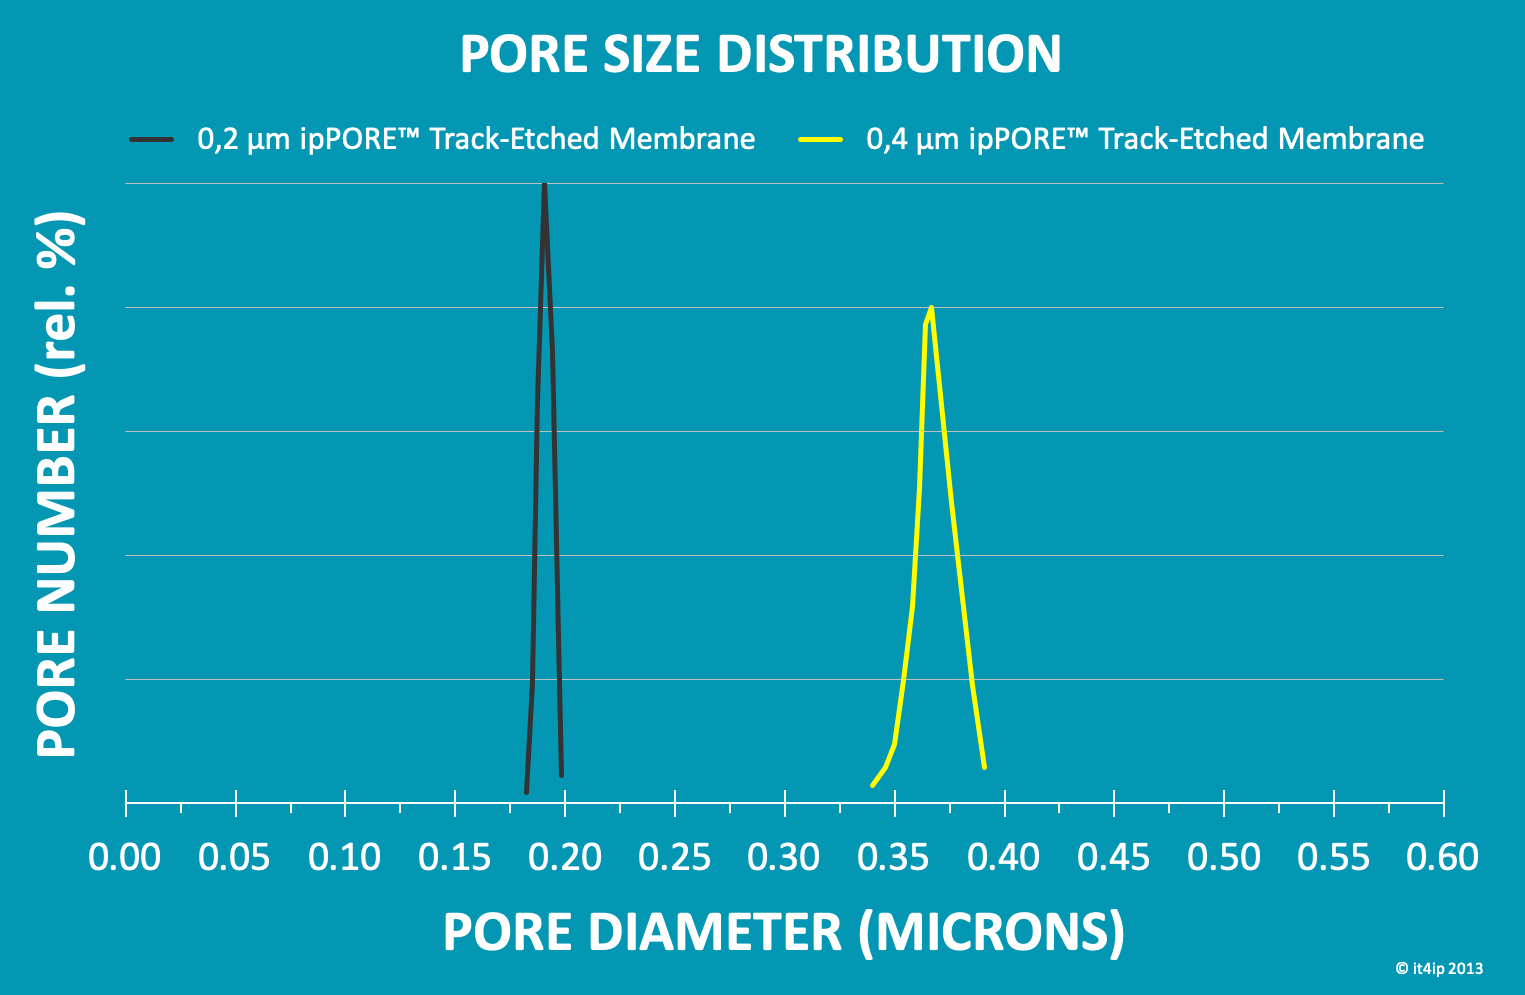 pore size distribution of track-etched membrane filters